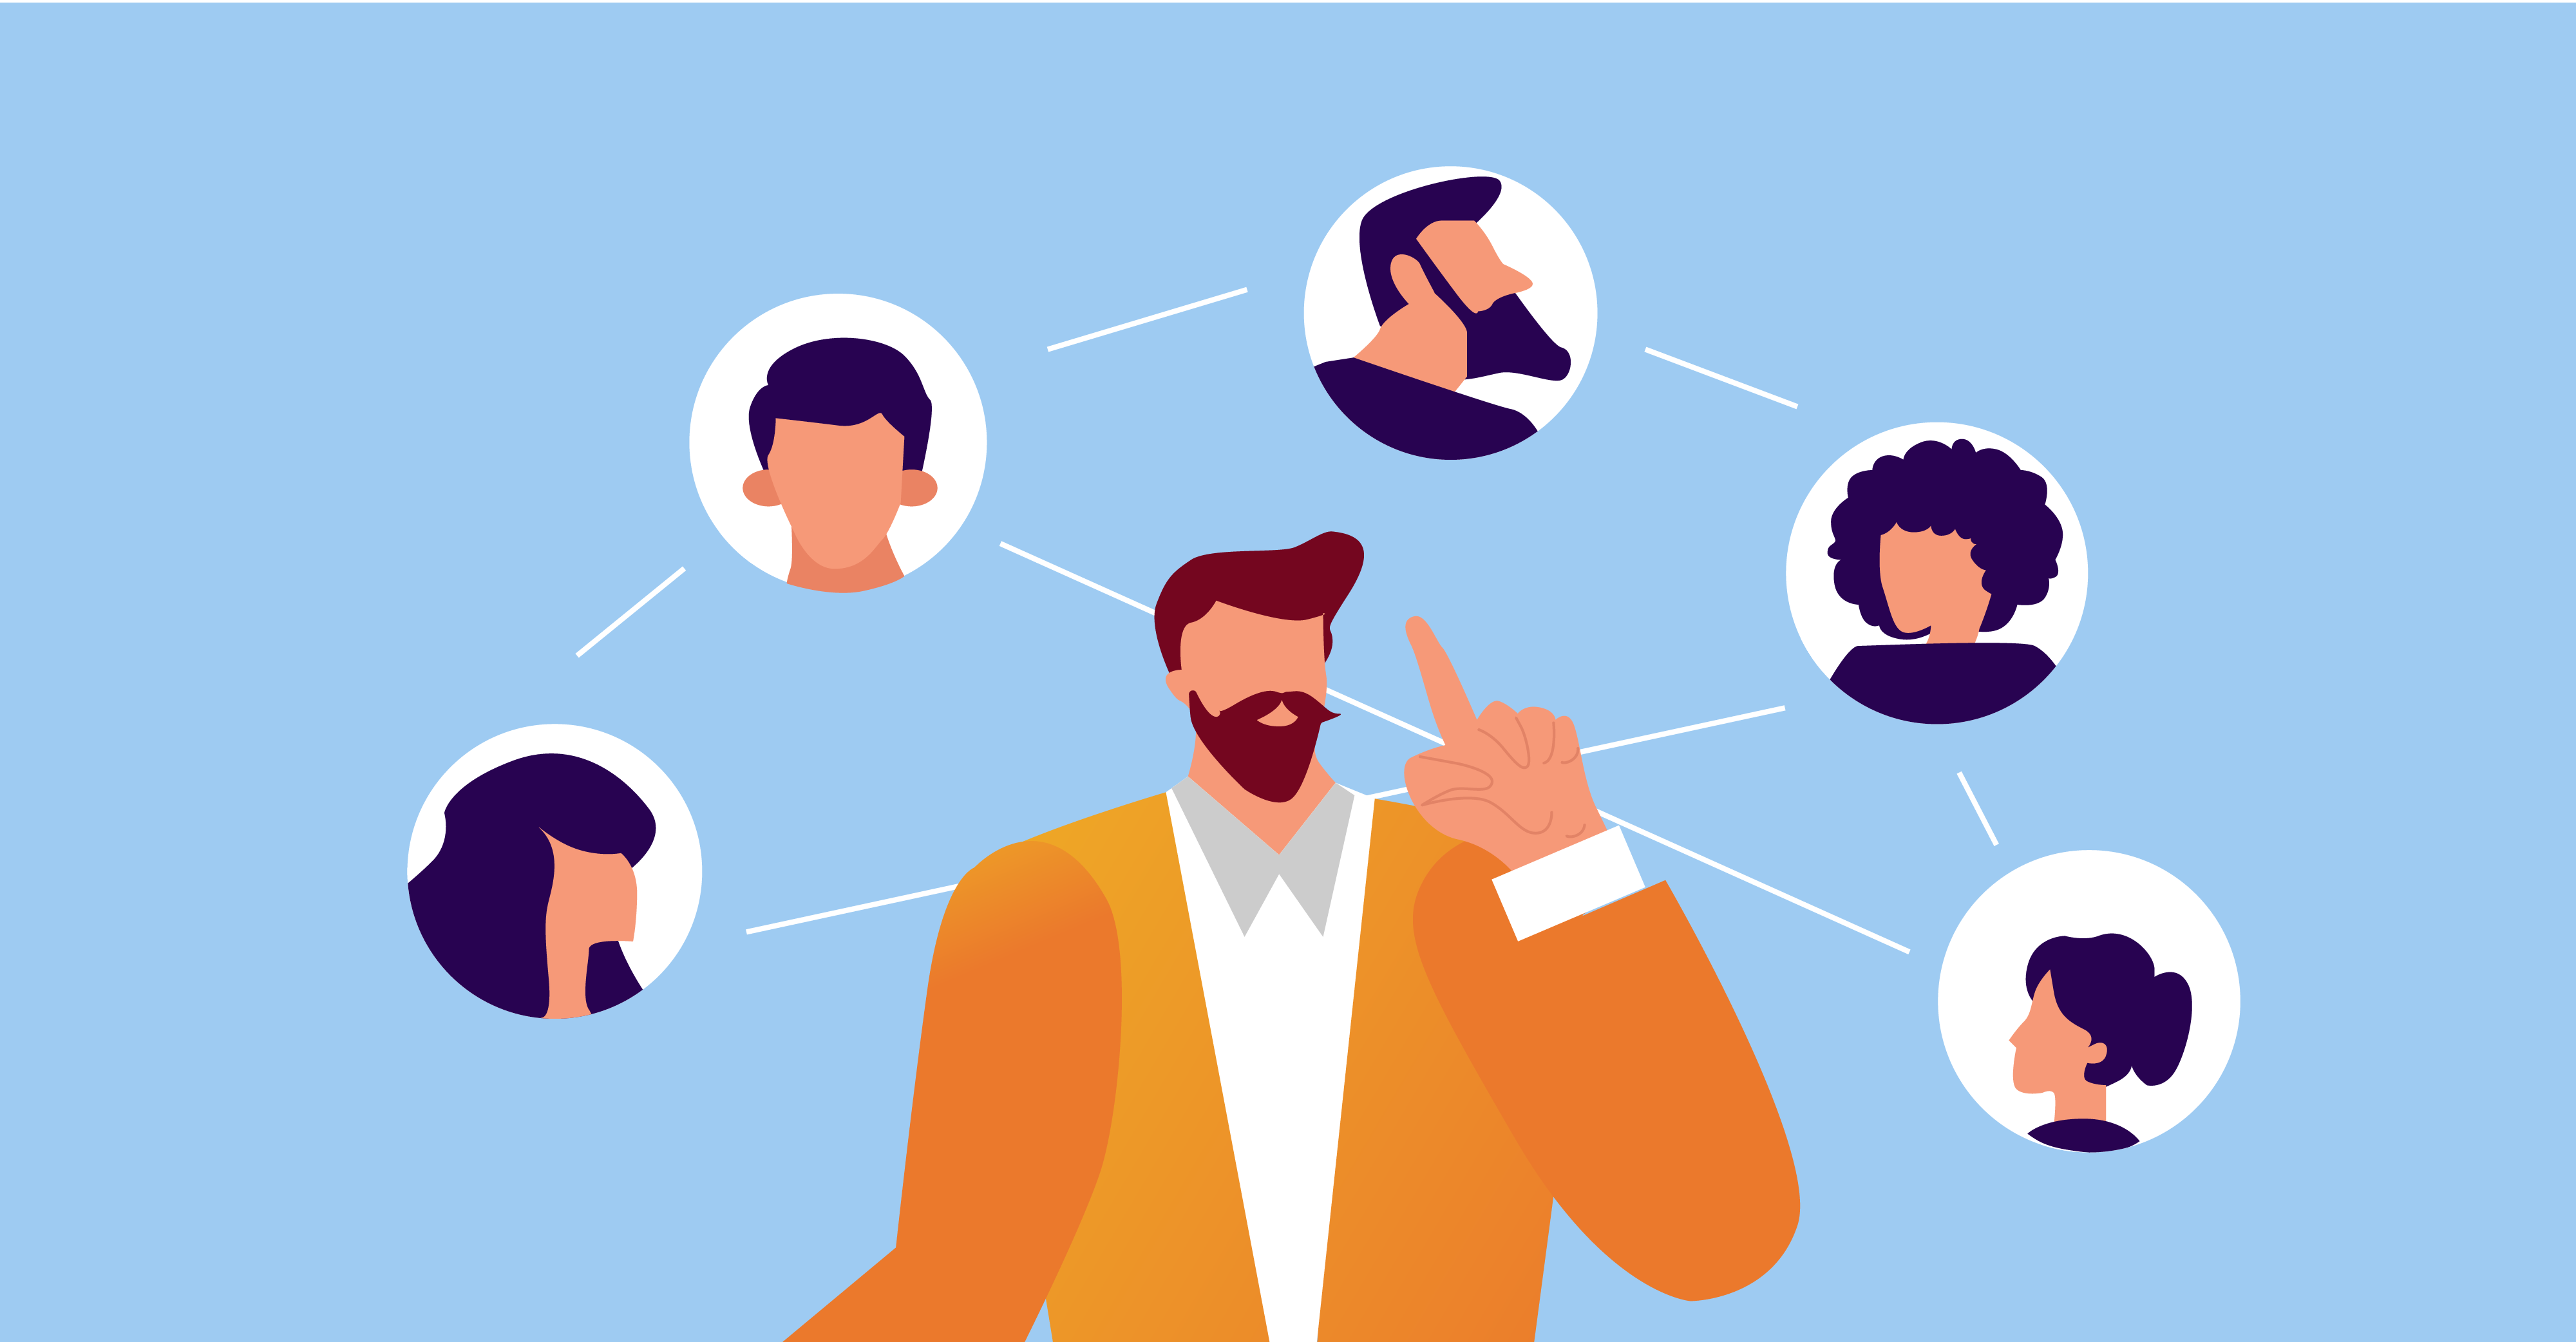 Creating personas is one of the UX design steps